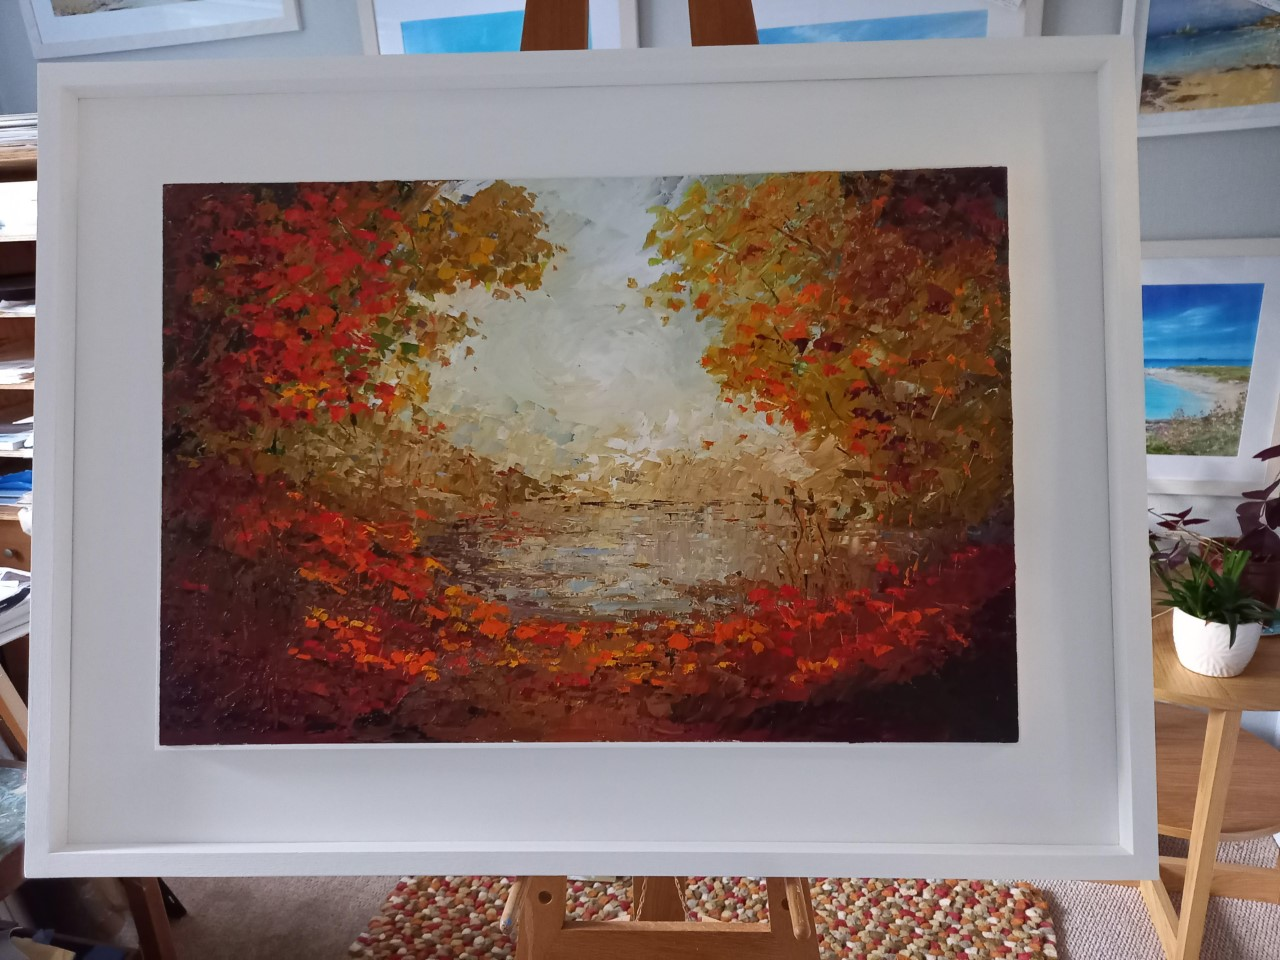 "'Autumn Path' Original oil painting - Framed Dimensions 38"" X 28"" £475"